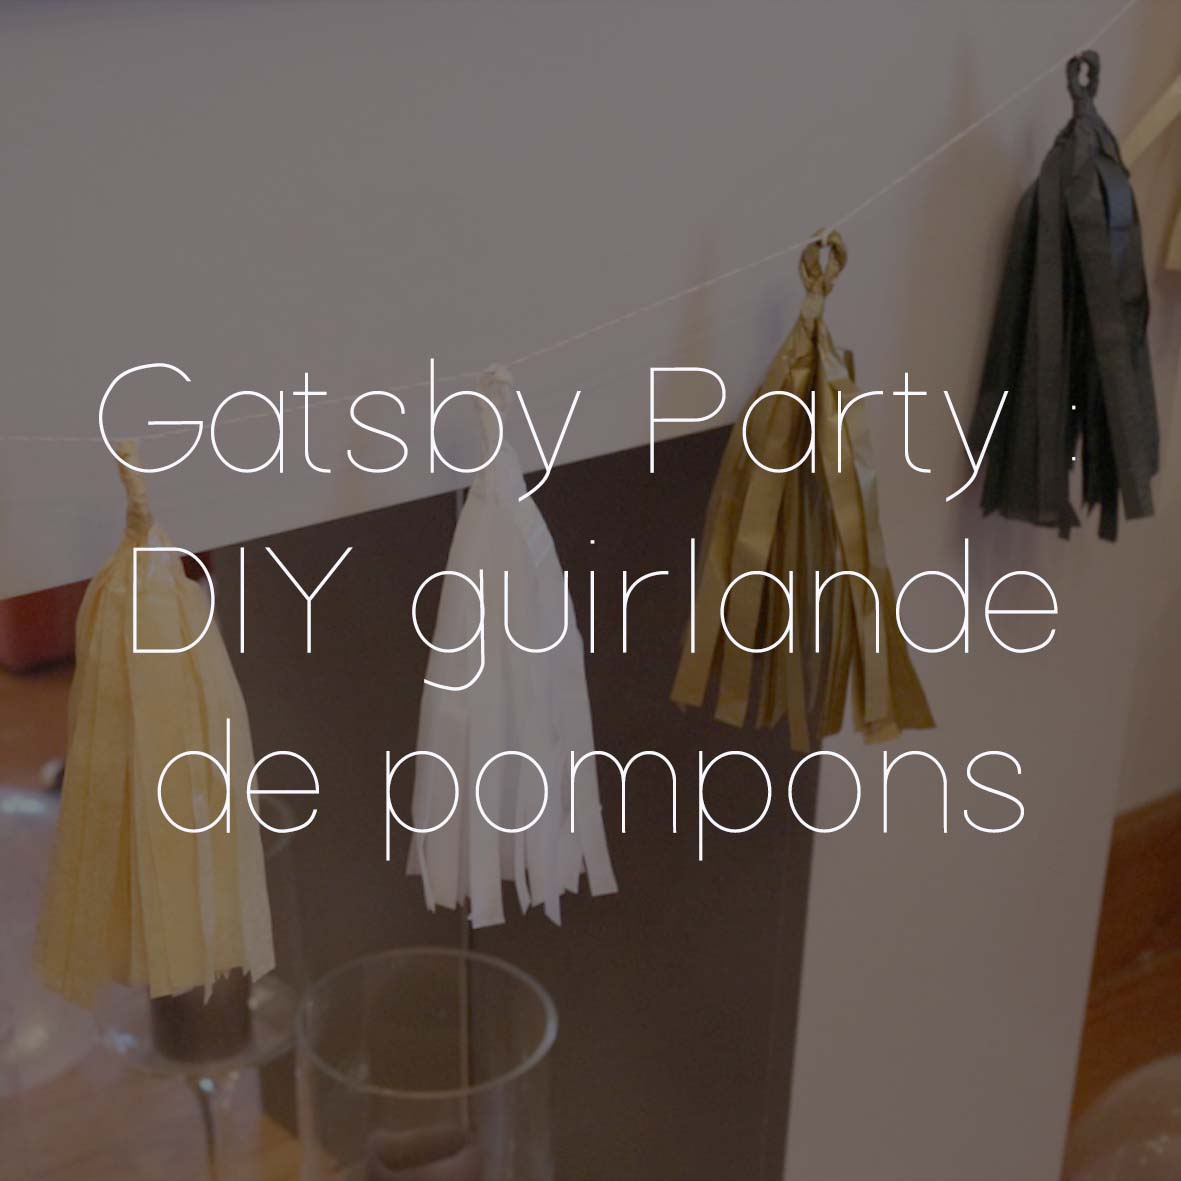 40 GATSBY PARTY DIY GUIRLANDE POMPONS